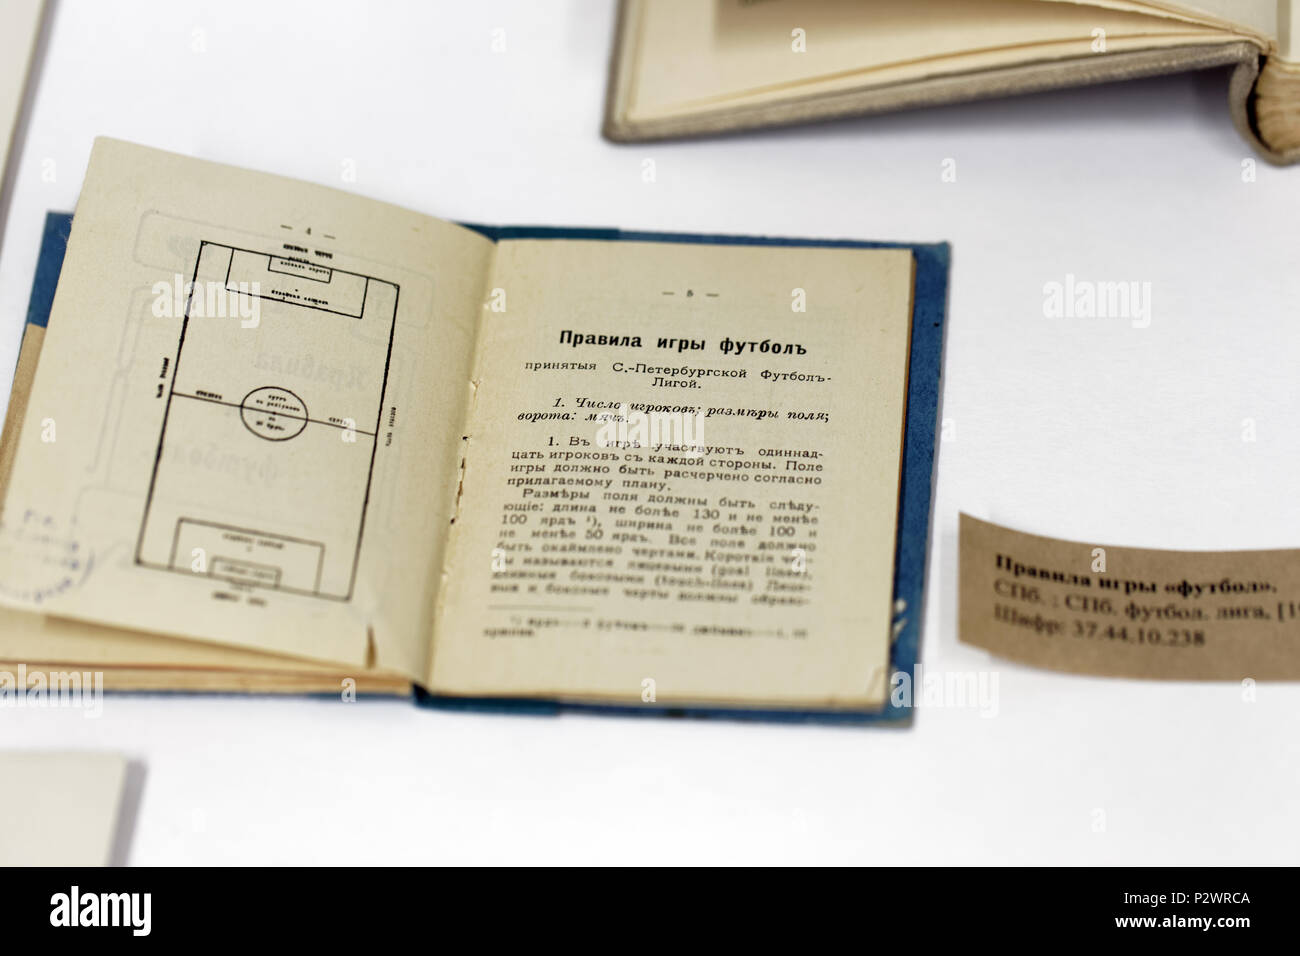 St. Petersburg, Russia - June 7, 2018: Football game rules issued in 1911 on the exhibition 'Goal!!! FIFA World Cups history' in the National Library  - Stock Image